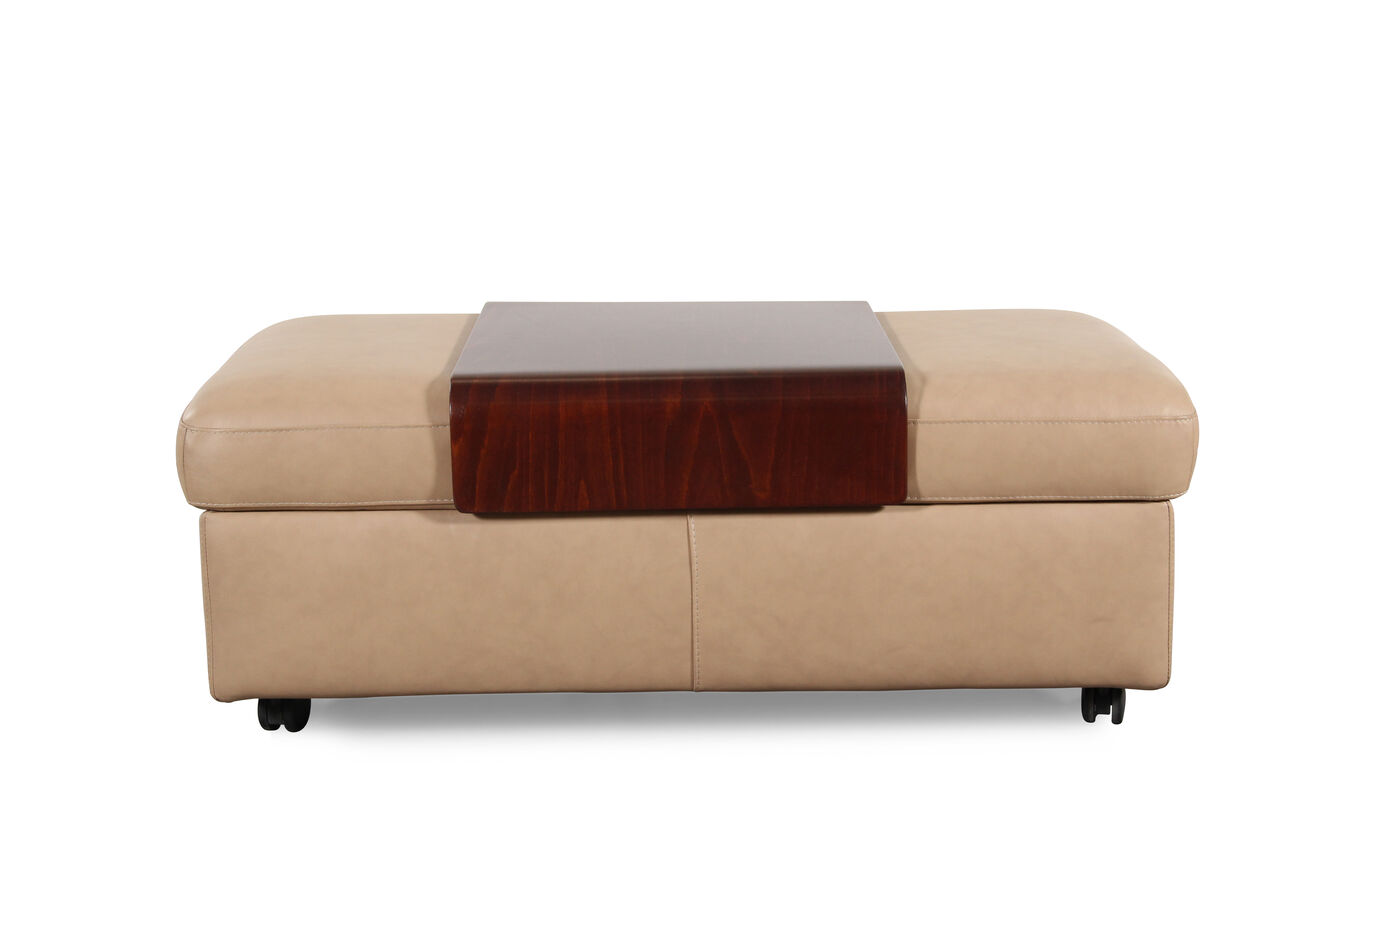 contemporary 37 leather double ottoman with table top in. Black Bedroom Furniture Sets. Home Design Ideas